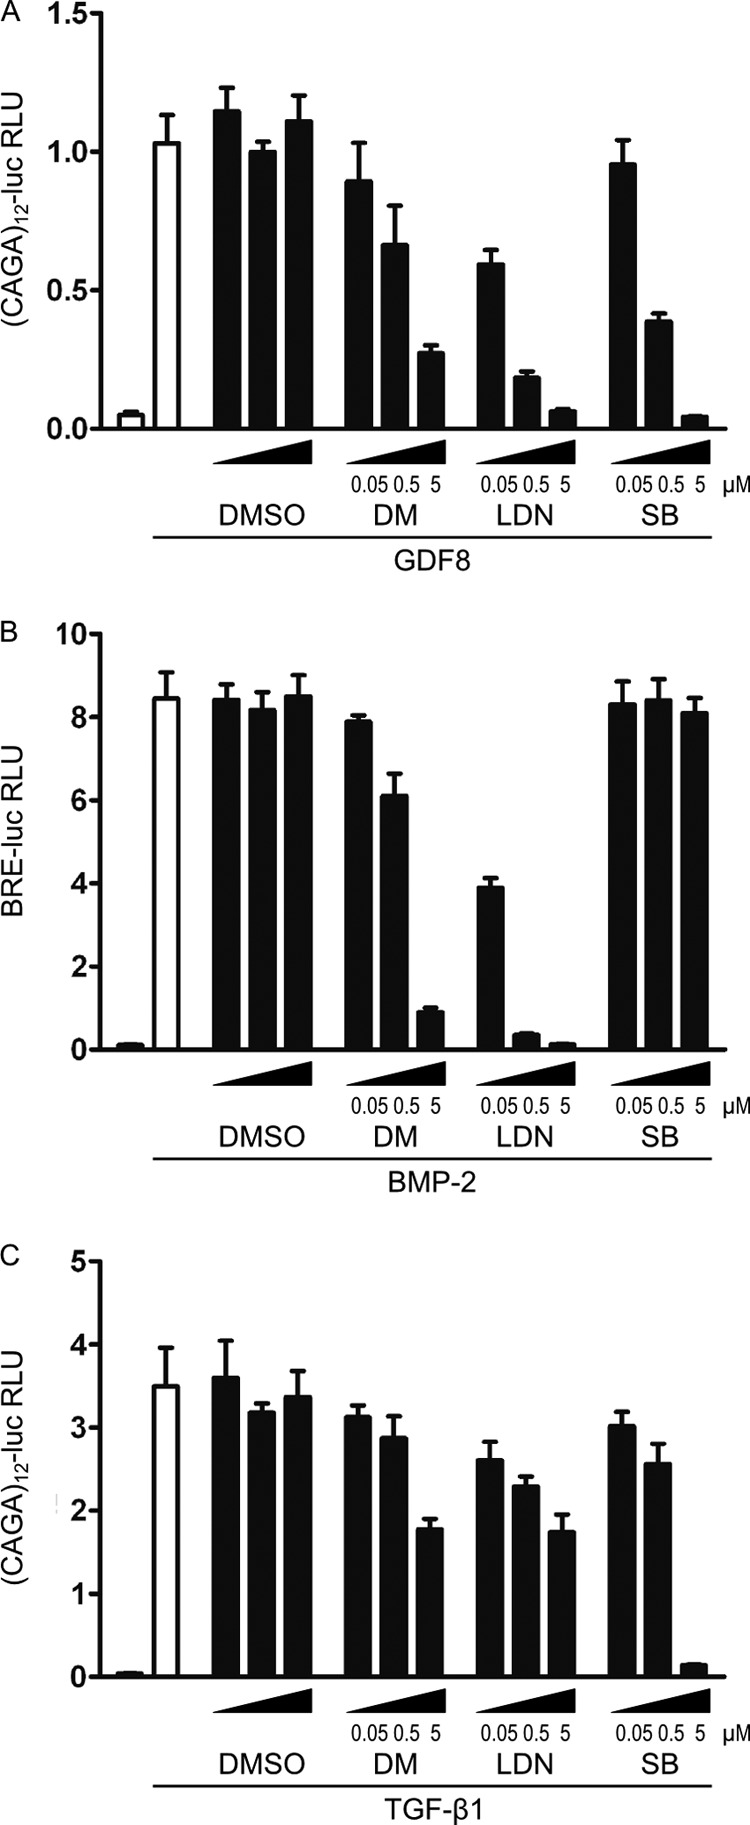 Dorsomorphin and LDN-193189 efficiently inhibit GDF8 induced Smad3/4 reporter gene activity. Undifferentiated C2C12 cells were transfected with Smad3/4-responsive (CAGA) 12 -luciferase or Smad1/5-responsive BRE-luciferase reporter constructs together with constitutively expressed Renilla luciferase overnight. Cells were serum-starved and stimulated for 6 h with 20 n m GDF8, 100 p m TGF-β, or 10 n m BMP2, together with the receptor kinase inhibitors dorsomorphin, LDN-193189, and SB-431542, as indicated. Luciferase activities are presented as relative luciferase units ( RLU ; firefly luciferase activity normalized to Renilla activity). Bars , mean ± S.D. ( error bars ) of triplicates. A , dorsomorphin and LDN-193189 repressed GDF8-induced (CAGA) 12 -luciferase activity from 0.5 and 0.05 μ m , respectively. B , BMP2-induced BRE-luciferase activity was efficiently repressed by 0.5 μ m dorsomorphin or 0.05 μ m LDN-193189. C , TGF-β-induced (CAGA) 12 -luciferase activity was repressed by 5 μ m dorsomorphin or 0.5 μ m LDN-193189.